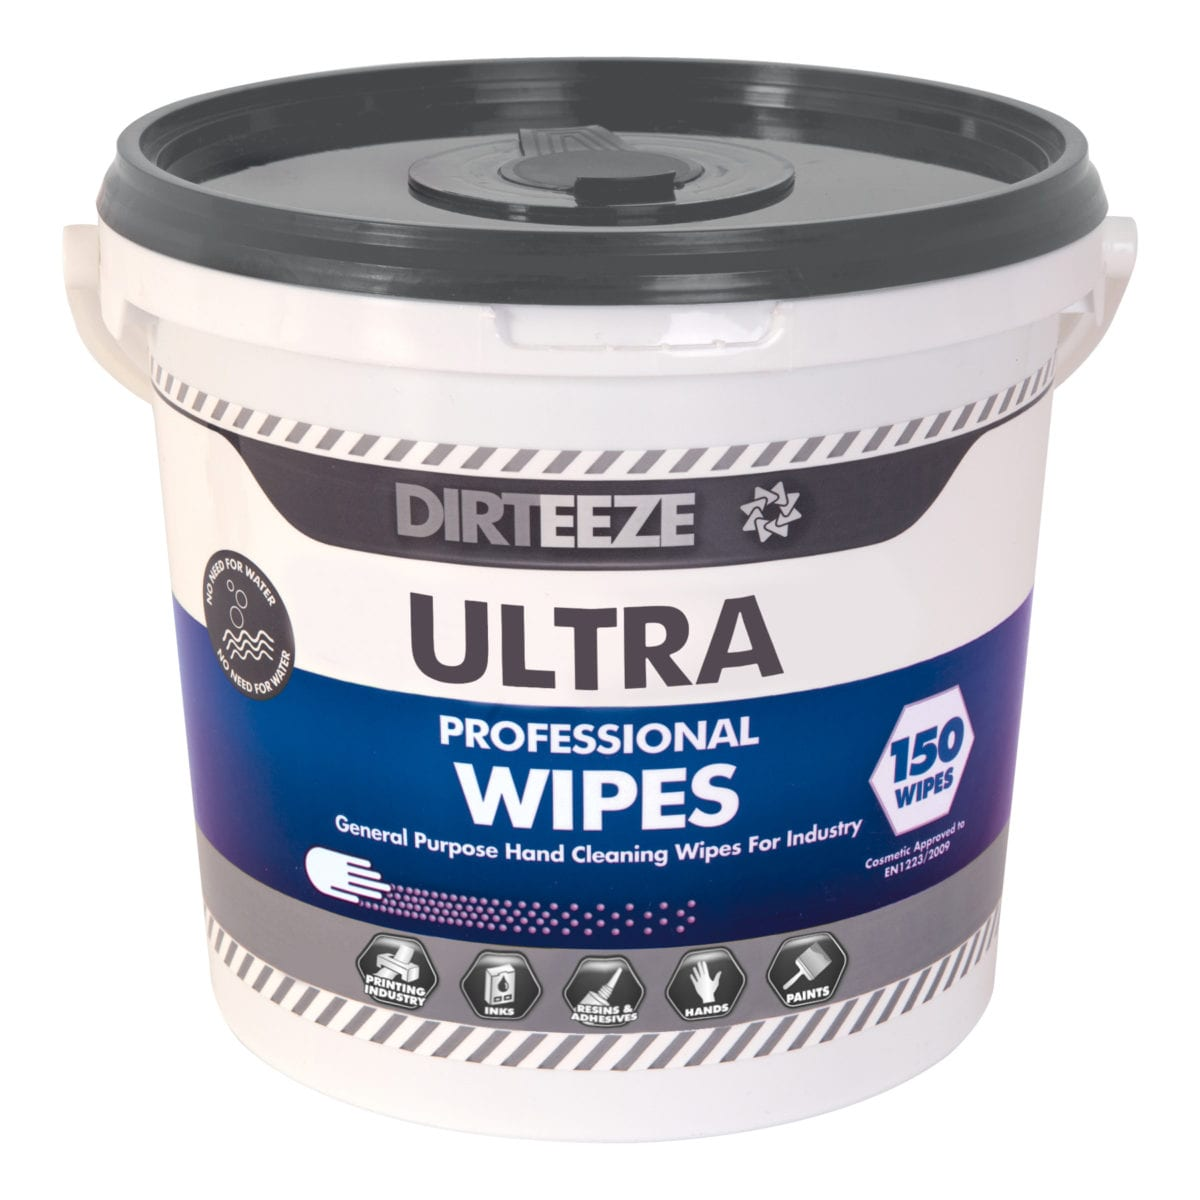 Ultra Professional Wipes Bucket